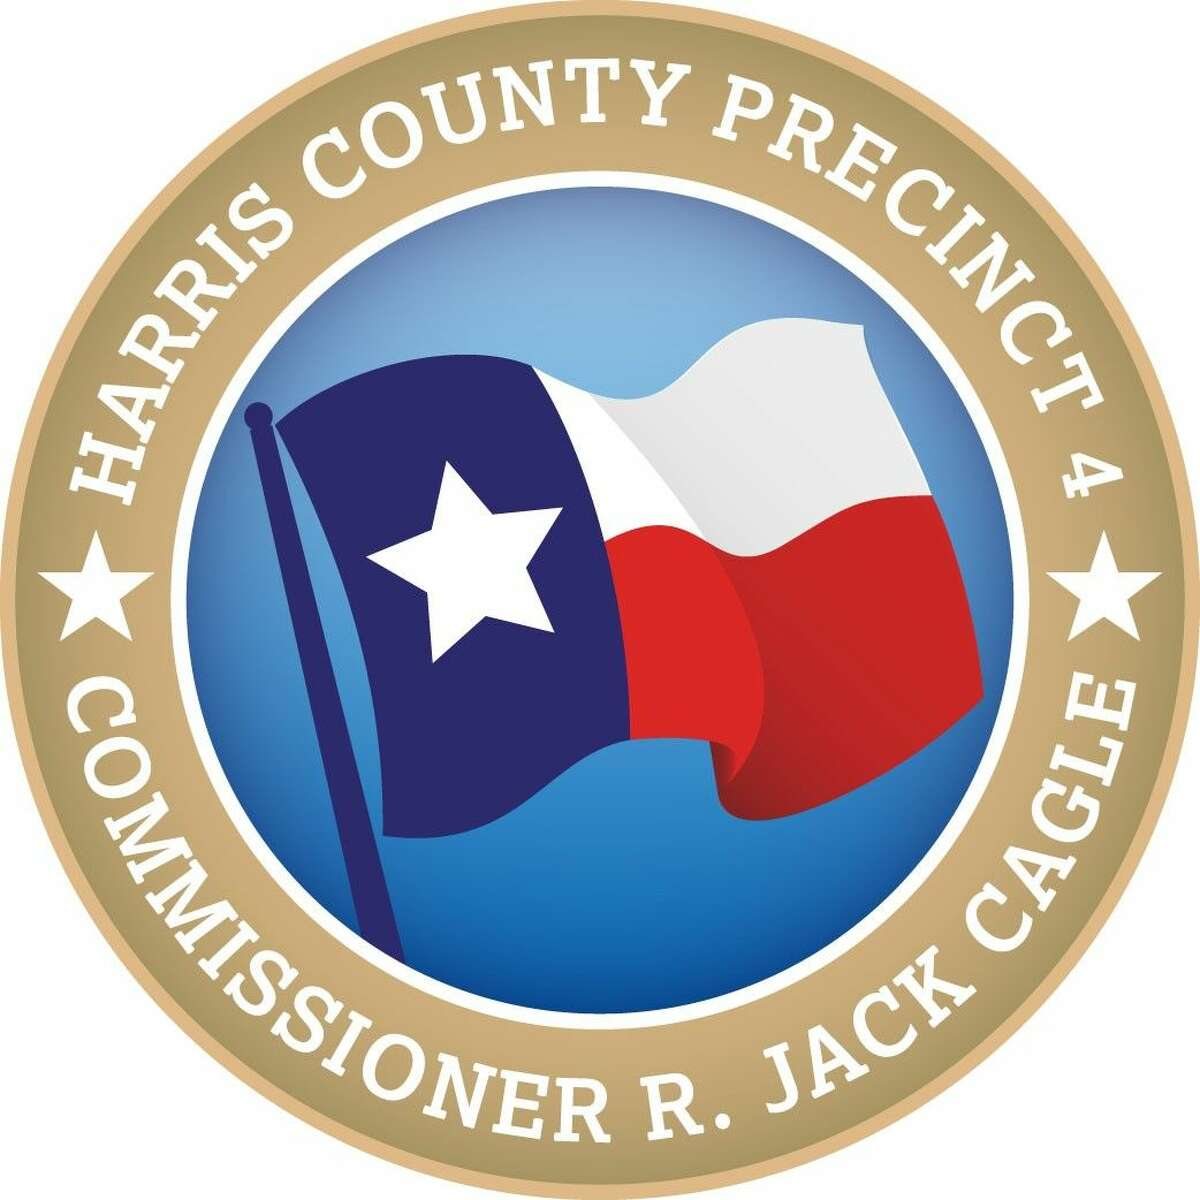 Precinct 4 offering new classes at Tomball Community Center